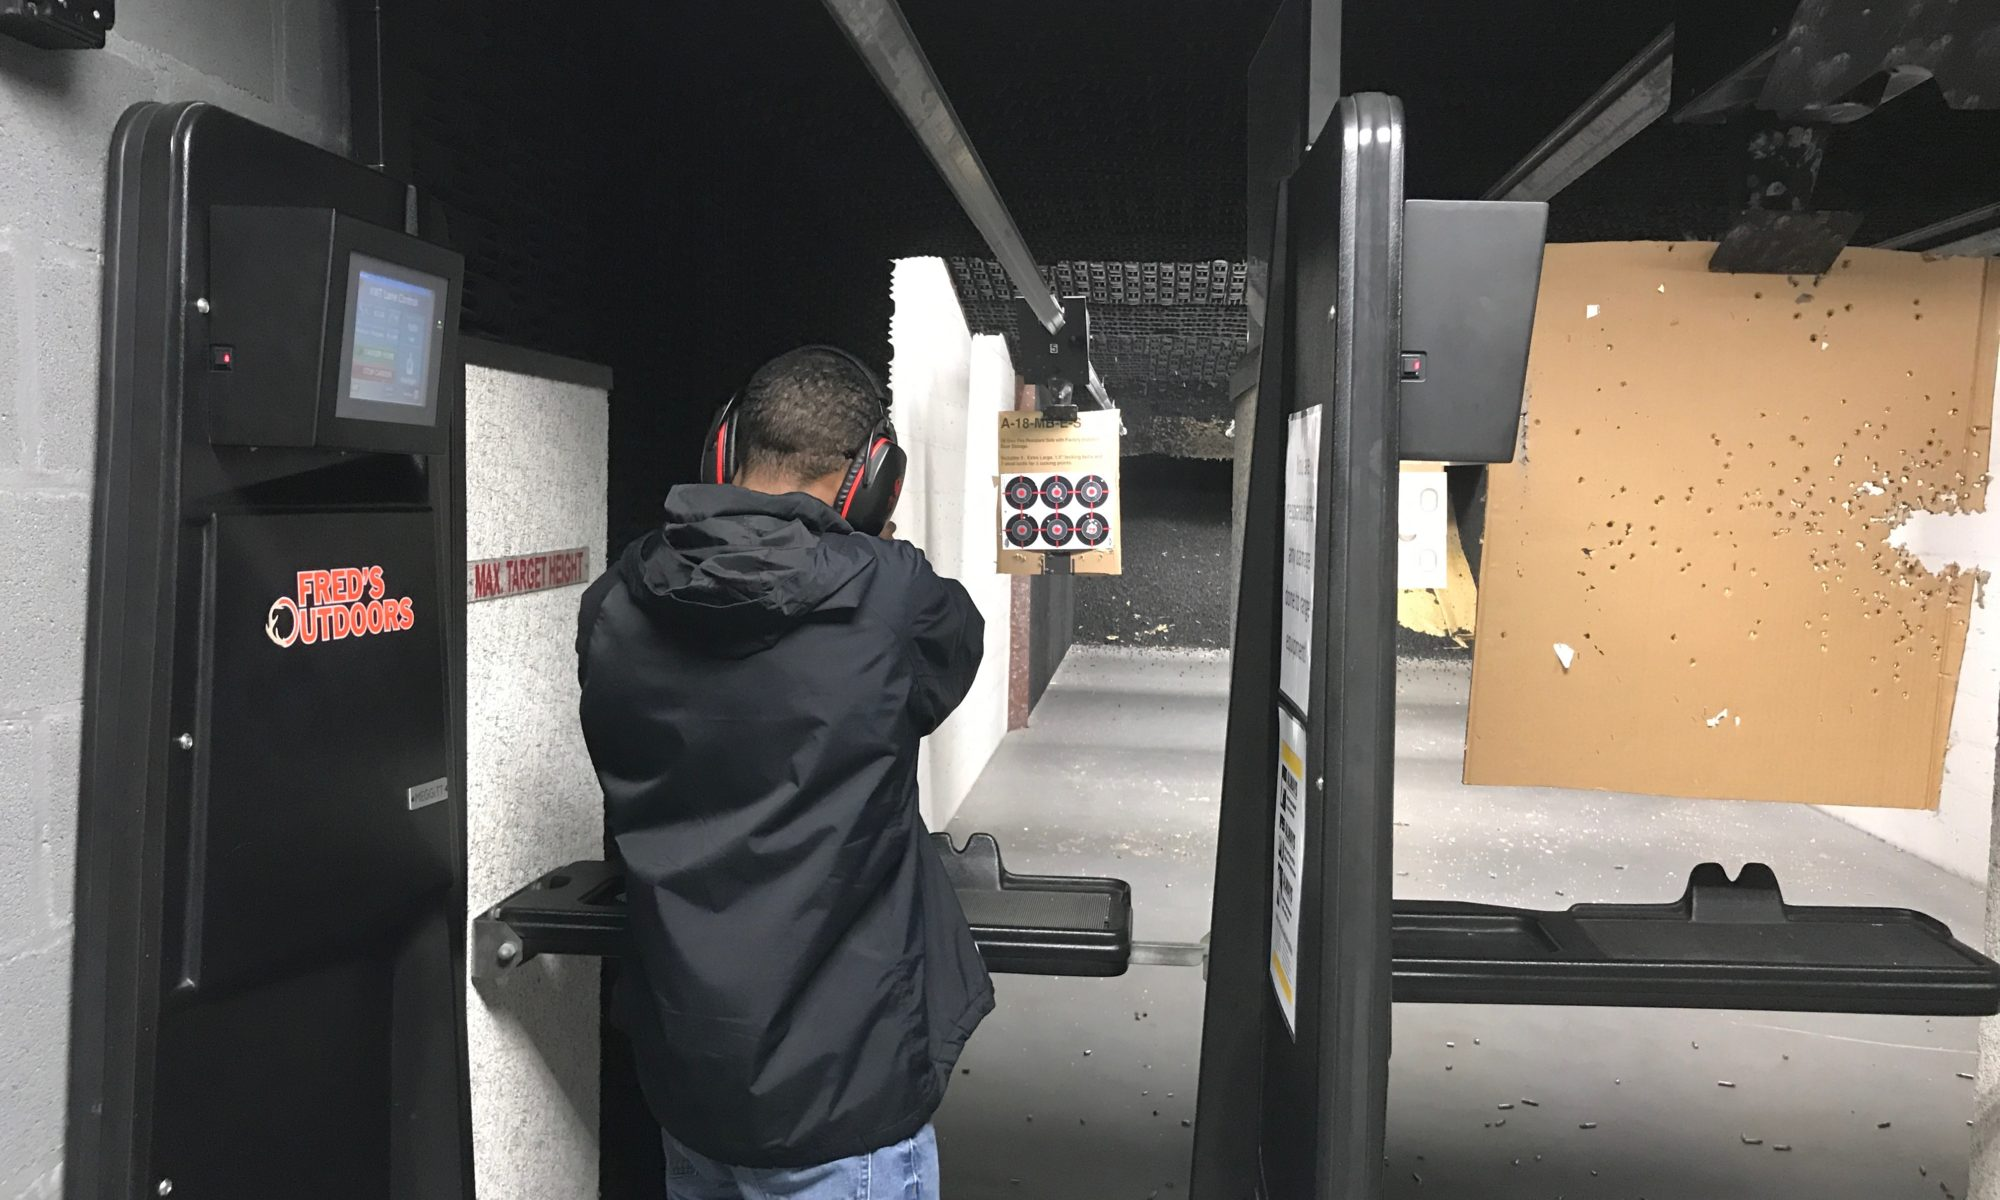 african american gun club, ken blanchard jr shooting at the range